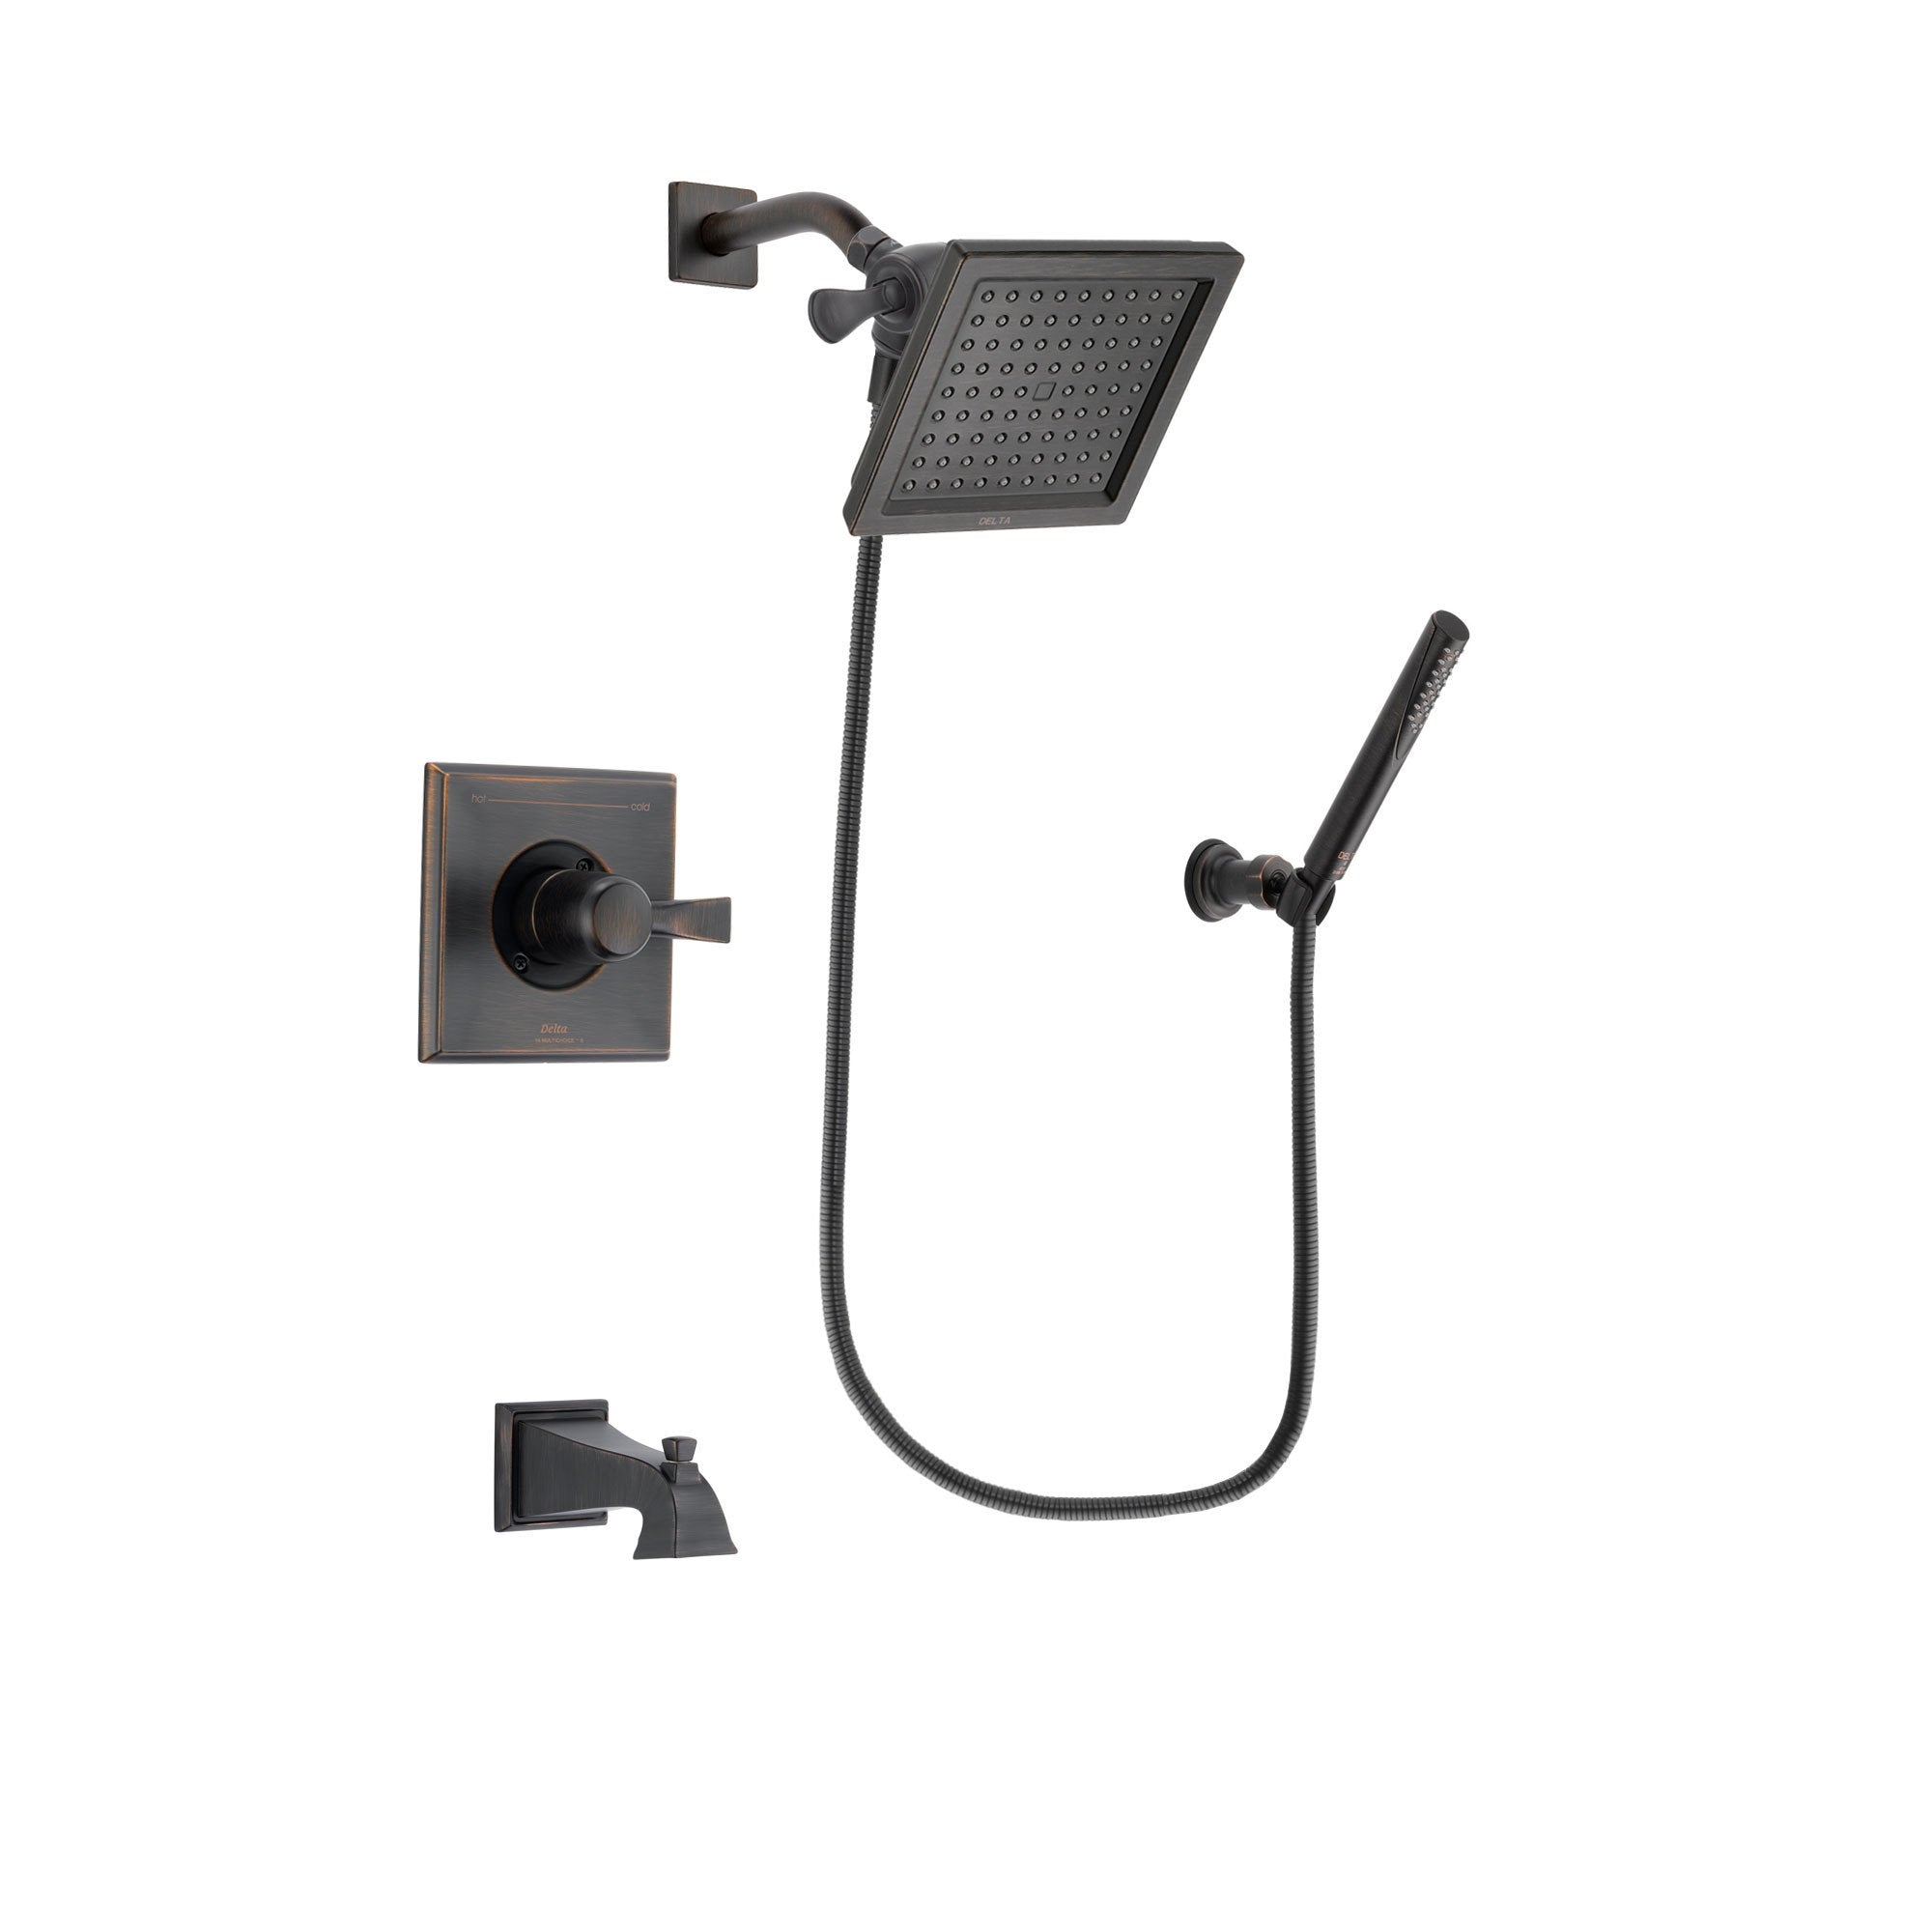 Delta Dryden Venetian Bronze Tub and Shower Faucet System w/Hand Shower DSP3297V